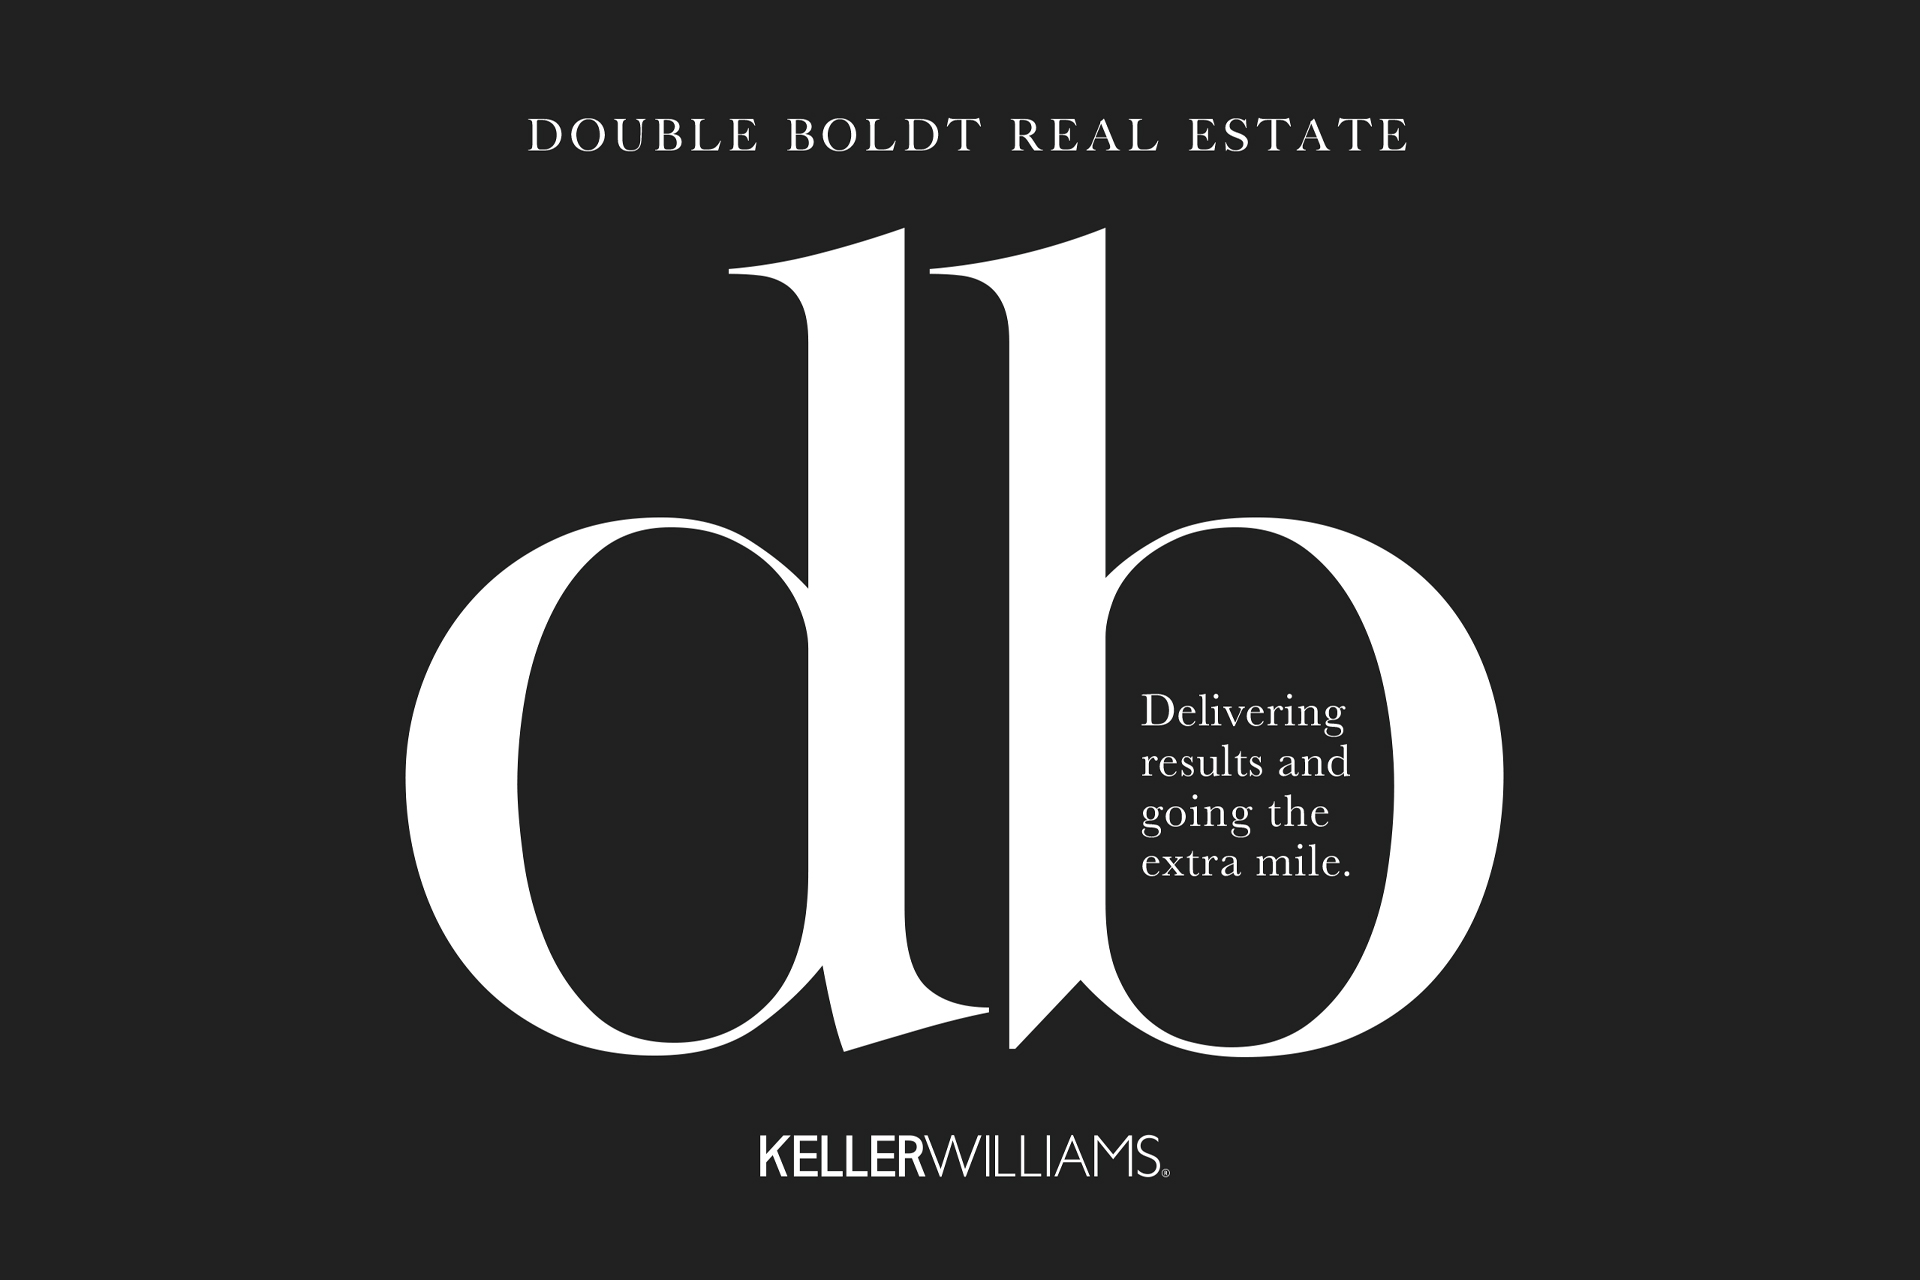 Double Boldt Real Estate